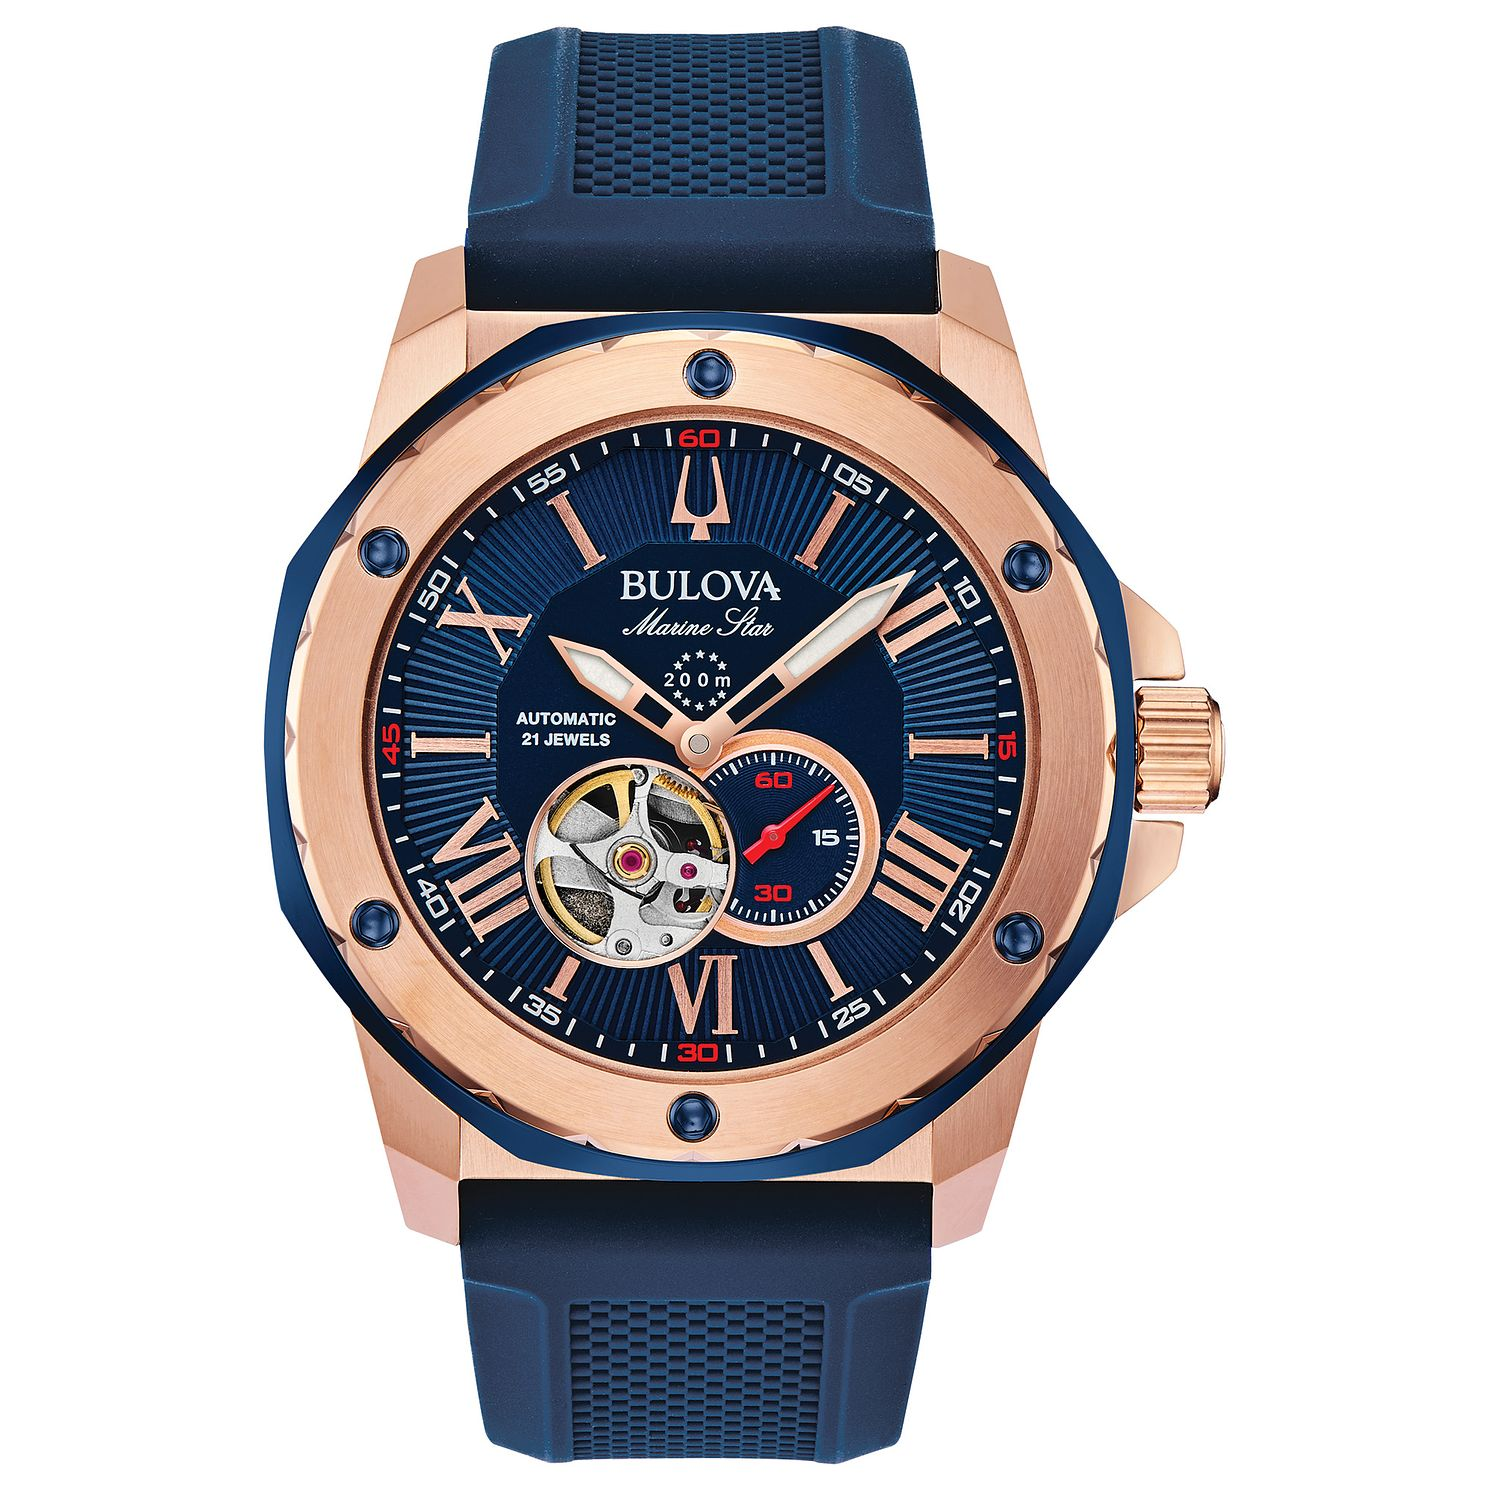 Bulova Marine Star Men's Blue Silicone Strap Watch - Product number 3400131